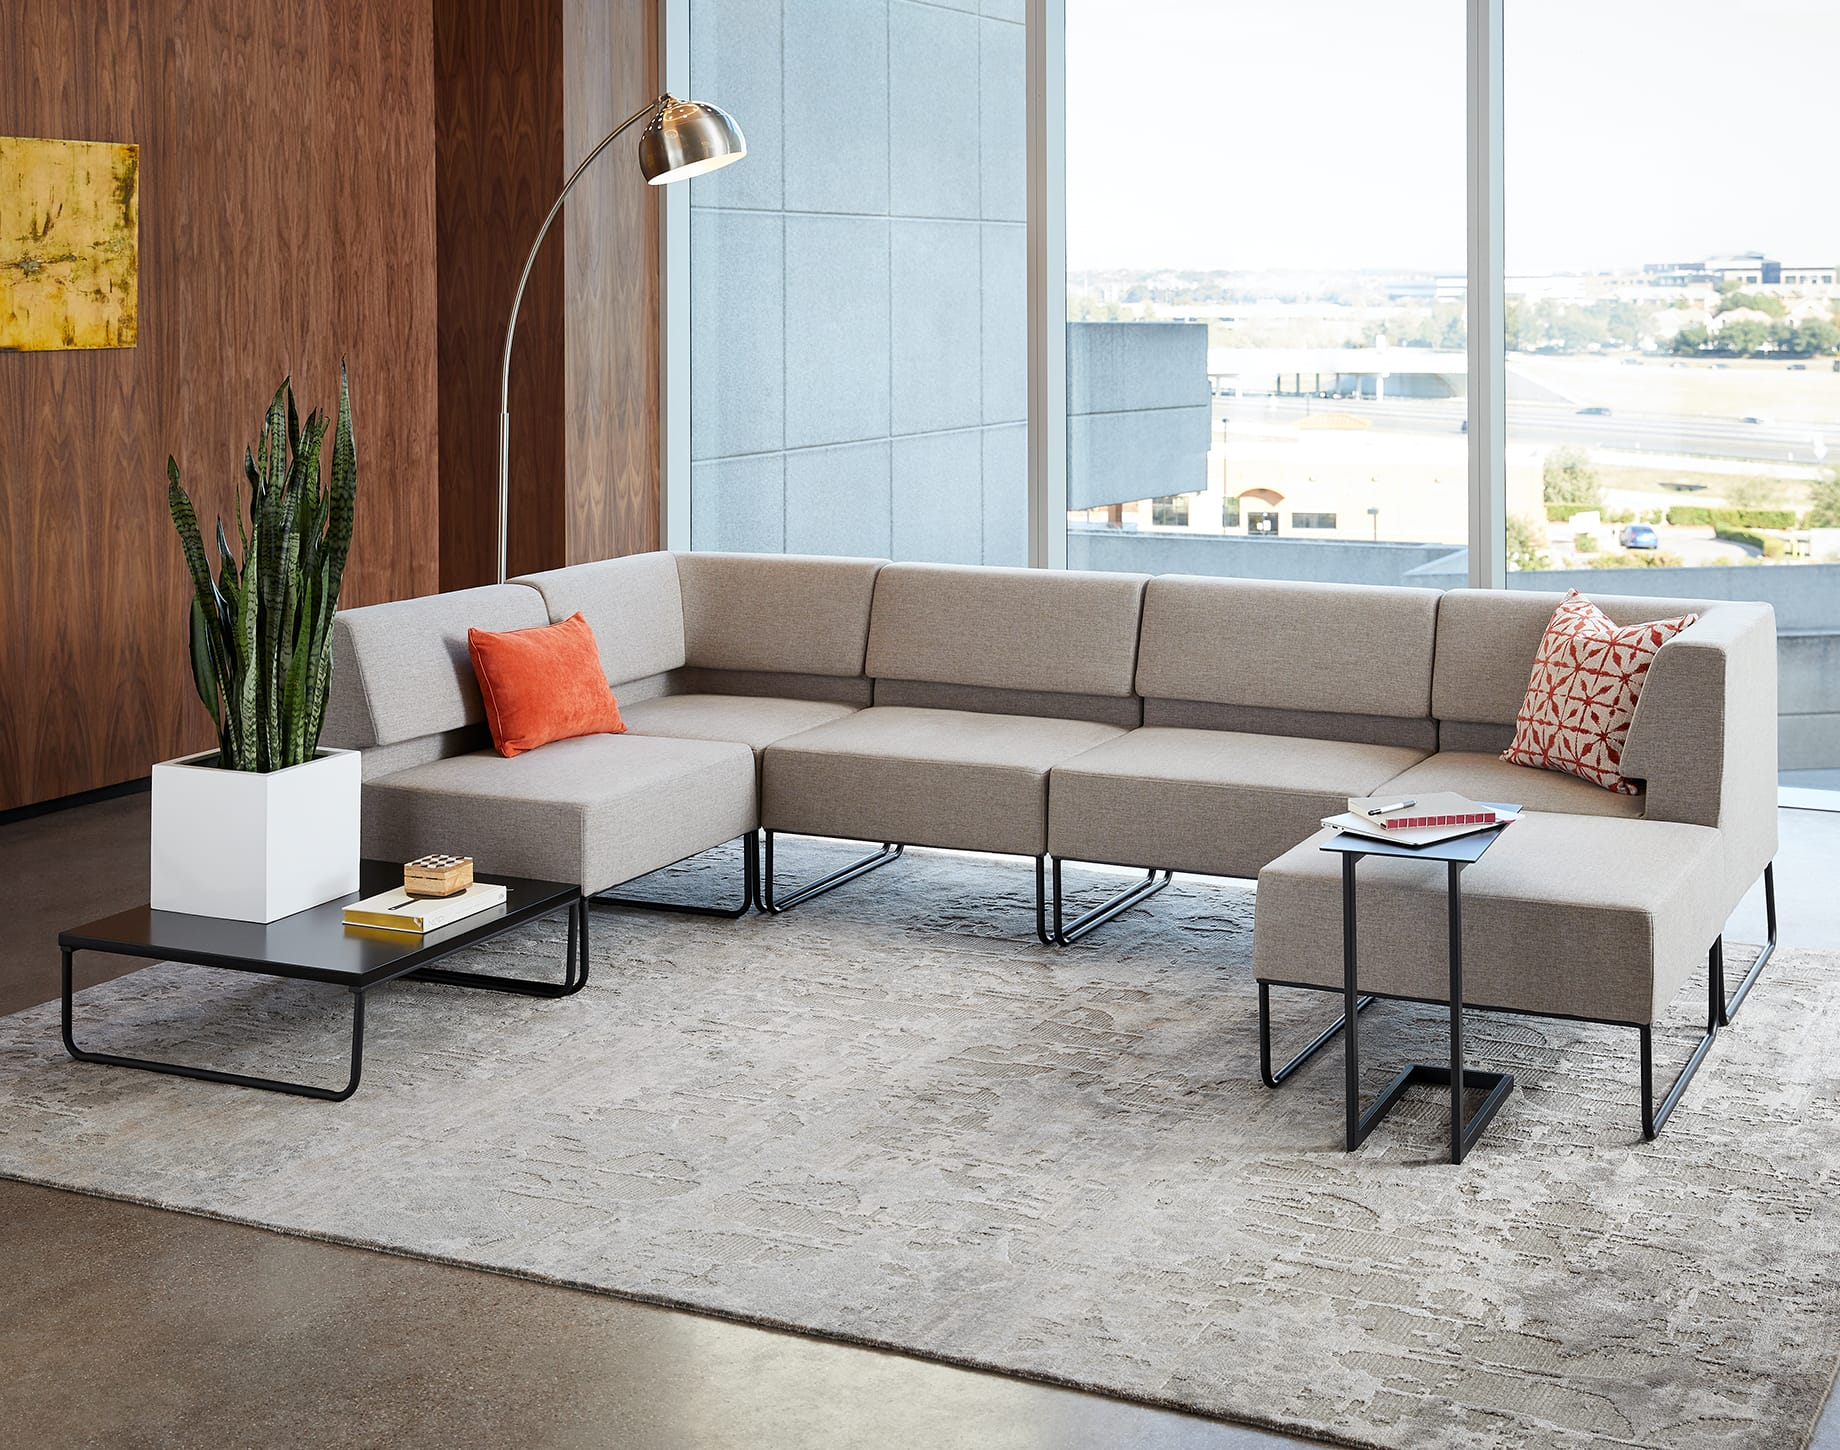 grey sectional sofa appears in office with variety of side and coffee tables